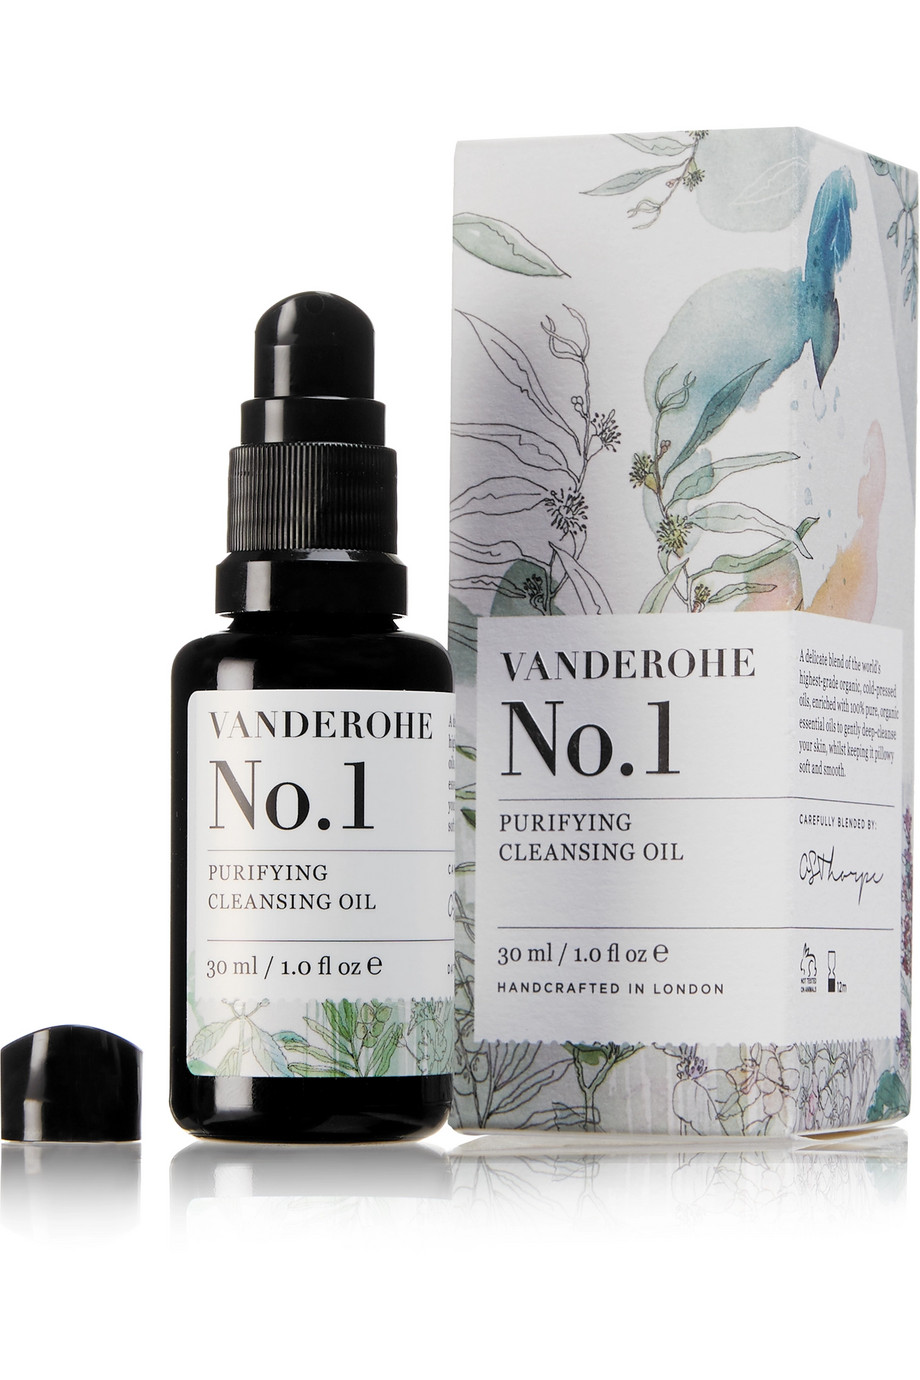 Vanderohe No.1 Purifying Cleansing Oil, 30ml